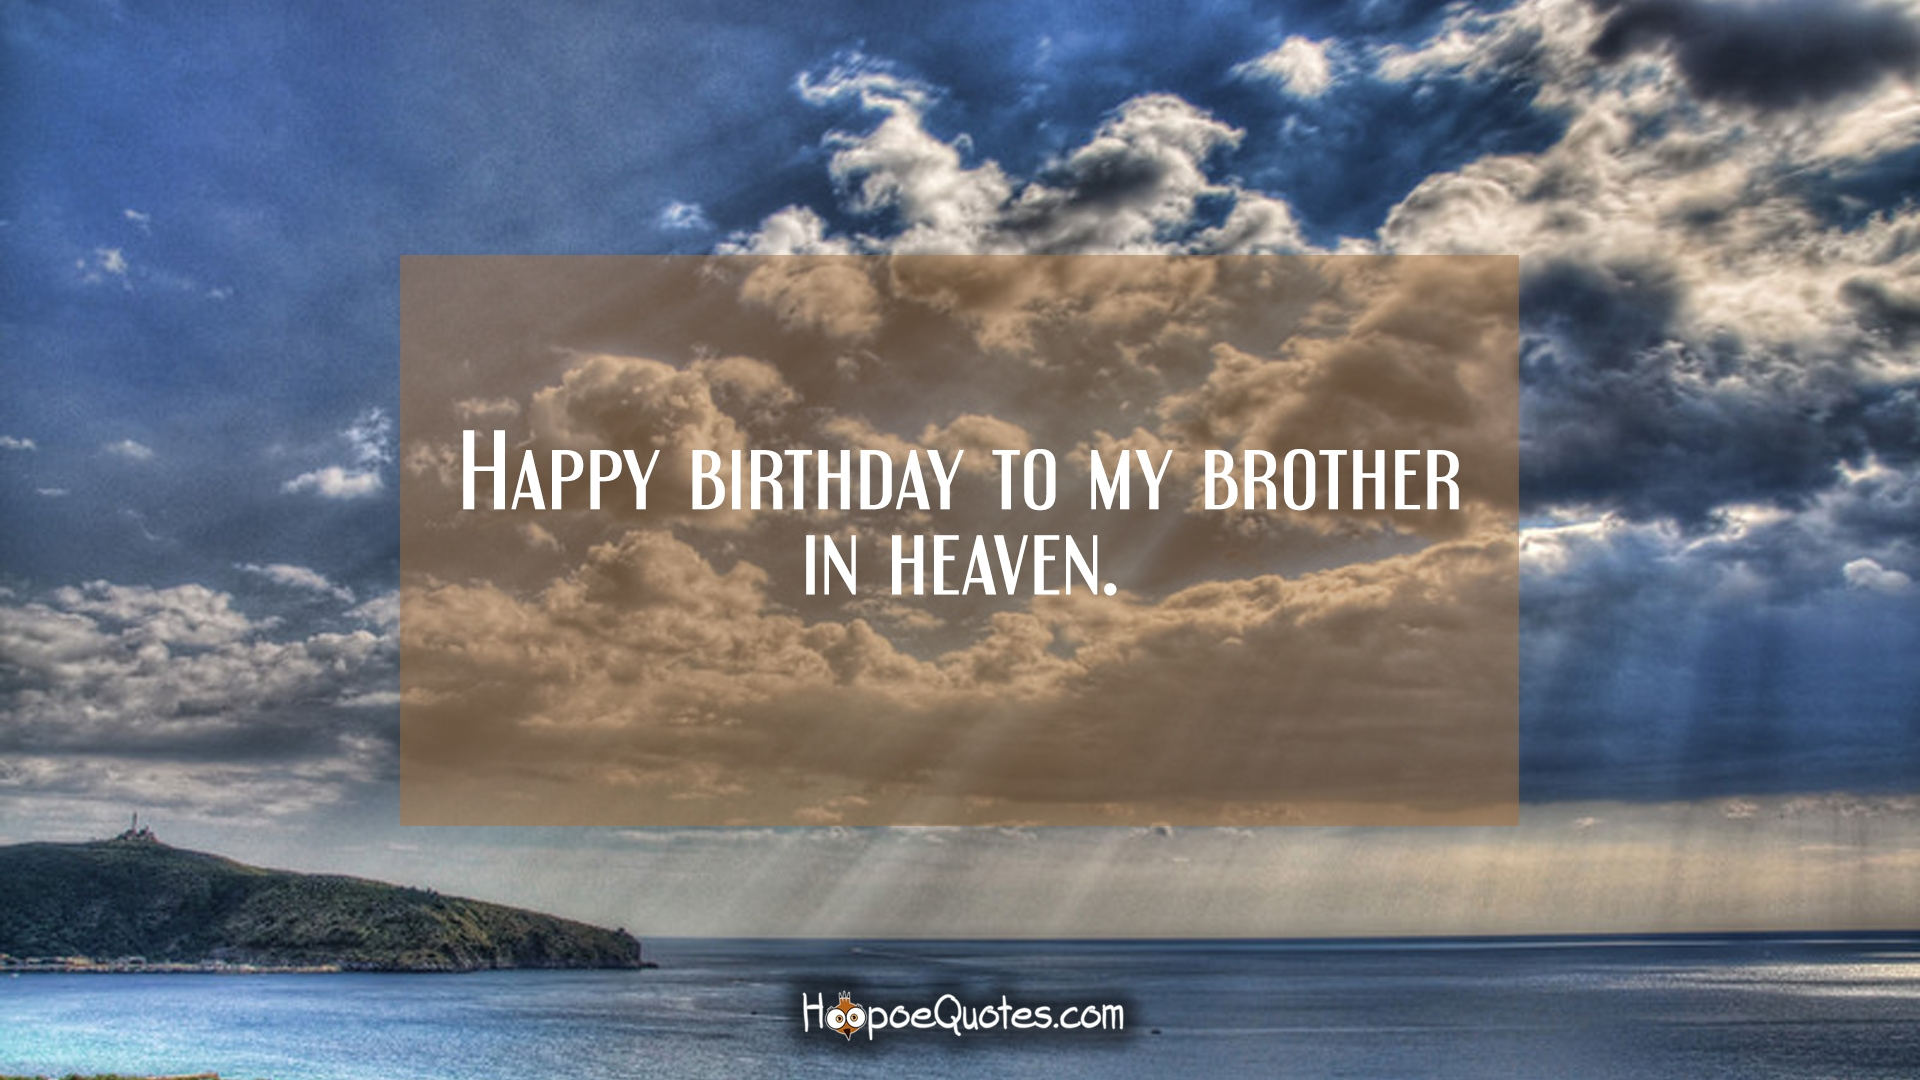 Happy Birthday To My Brother In Heaven Hoopoequotes